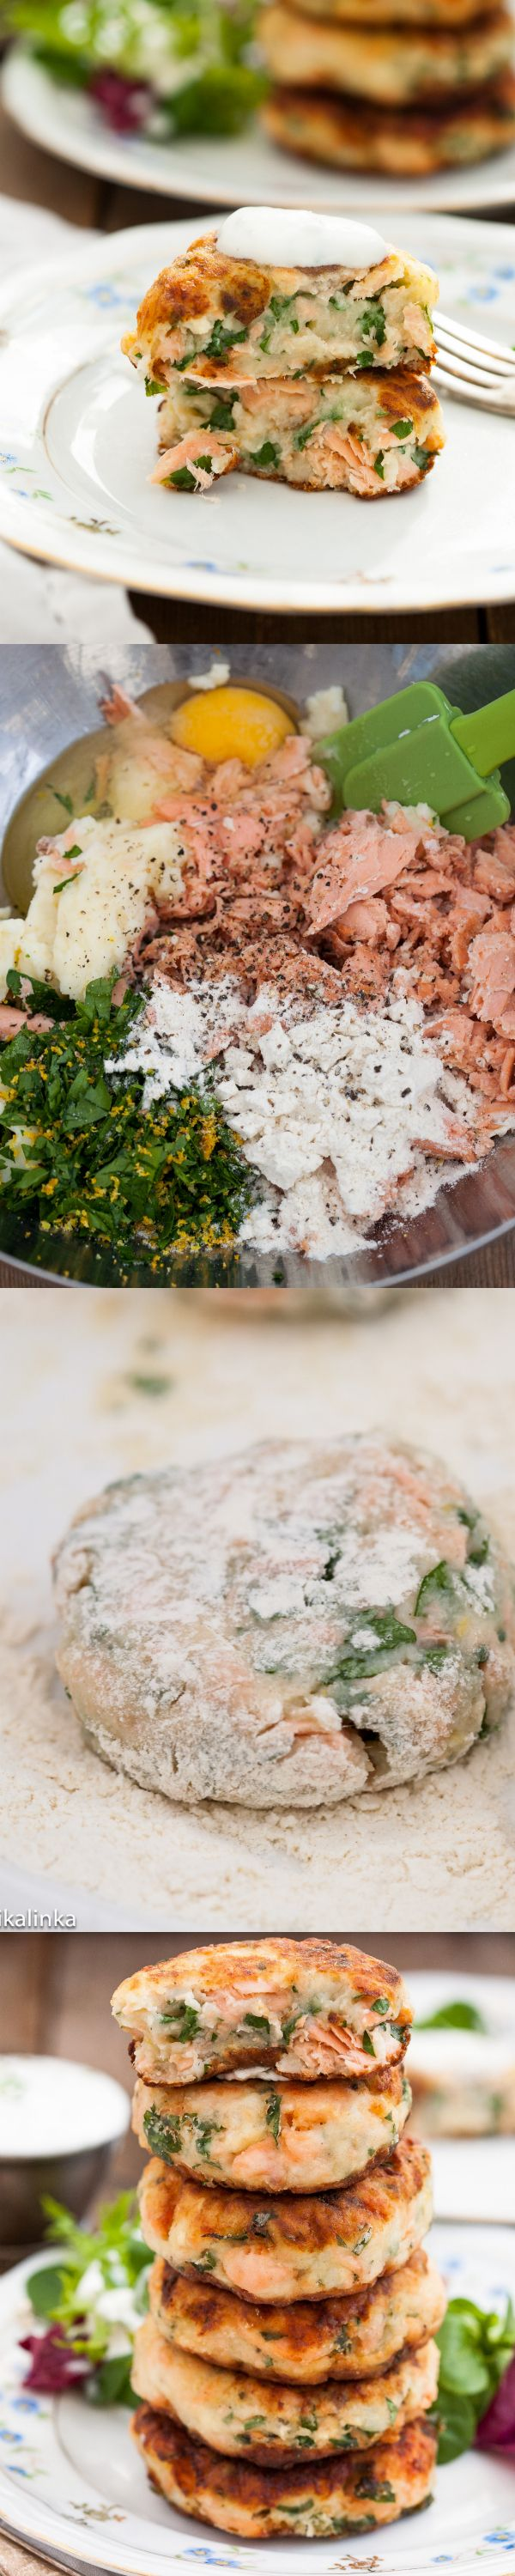 Salmon Cakes with Chive and Garlic Sauce by vikalinka #Salmon_Cakes #Healthy